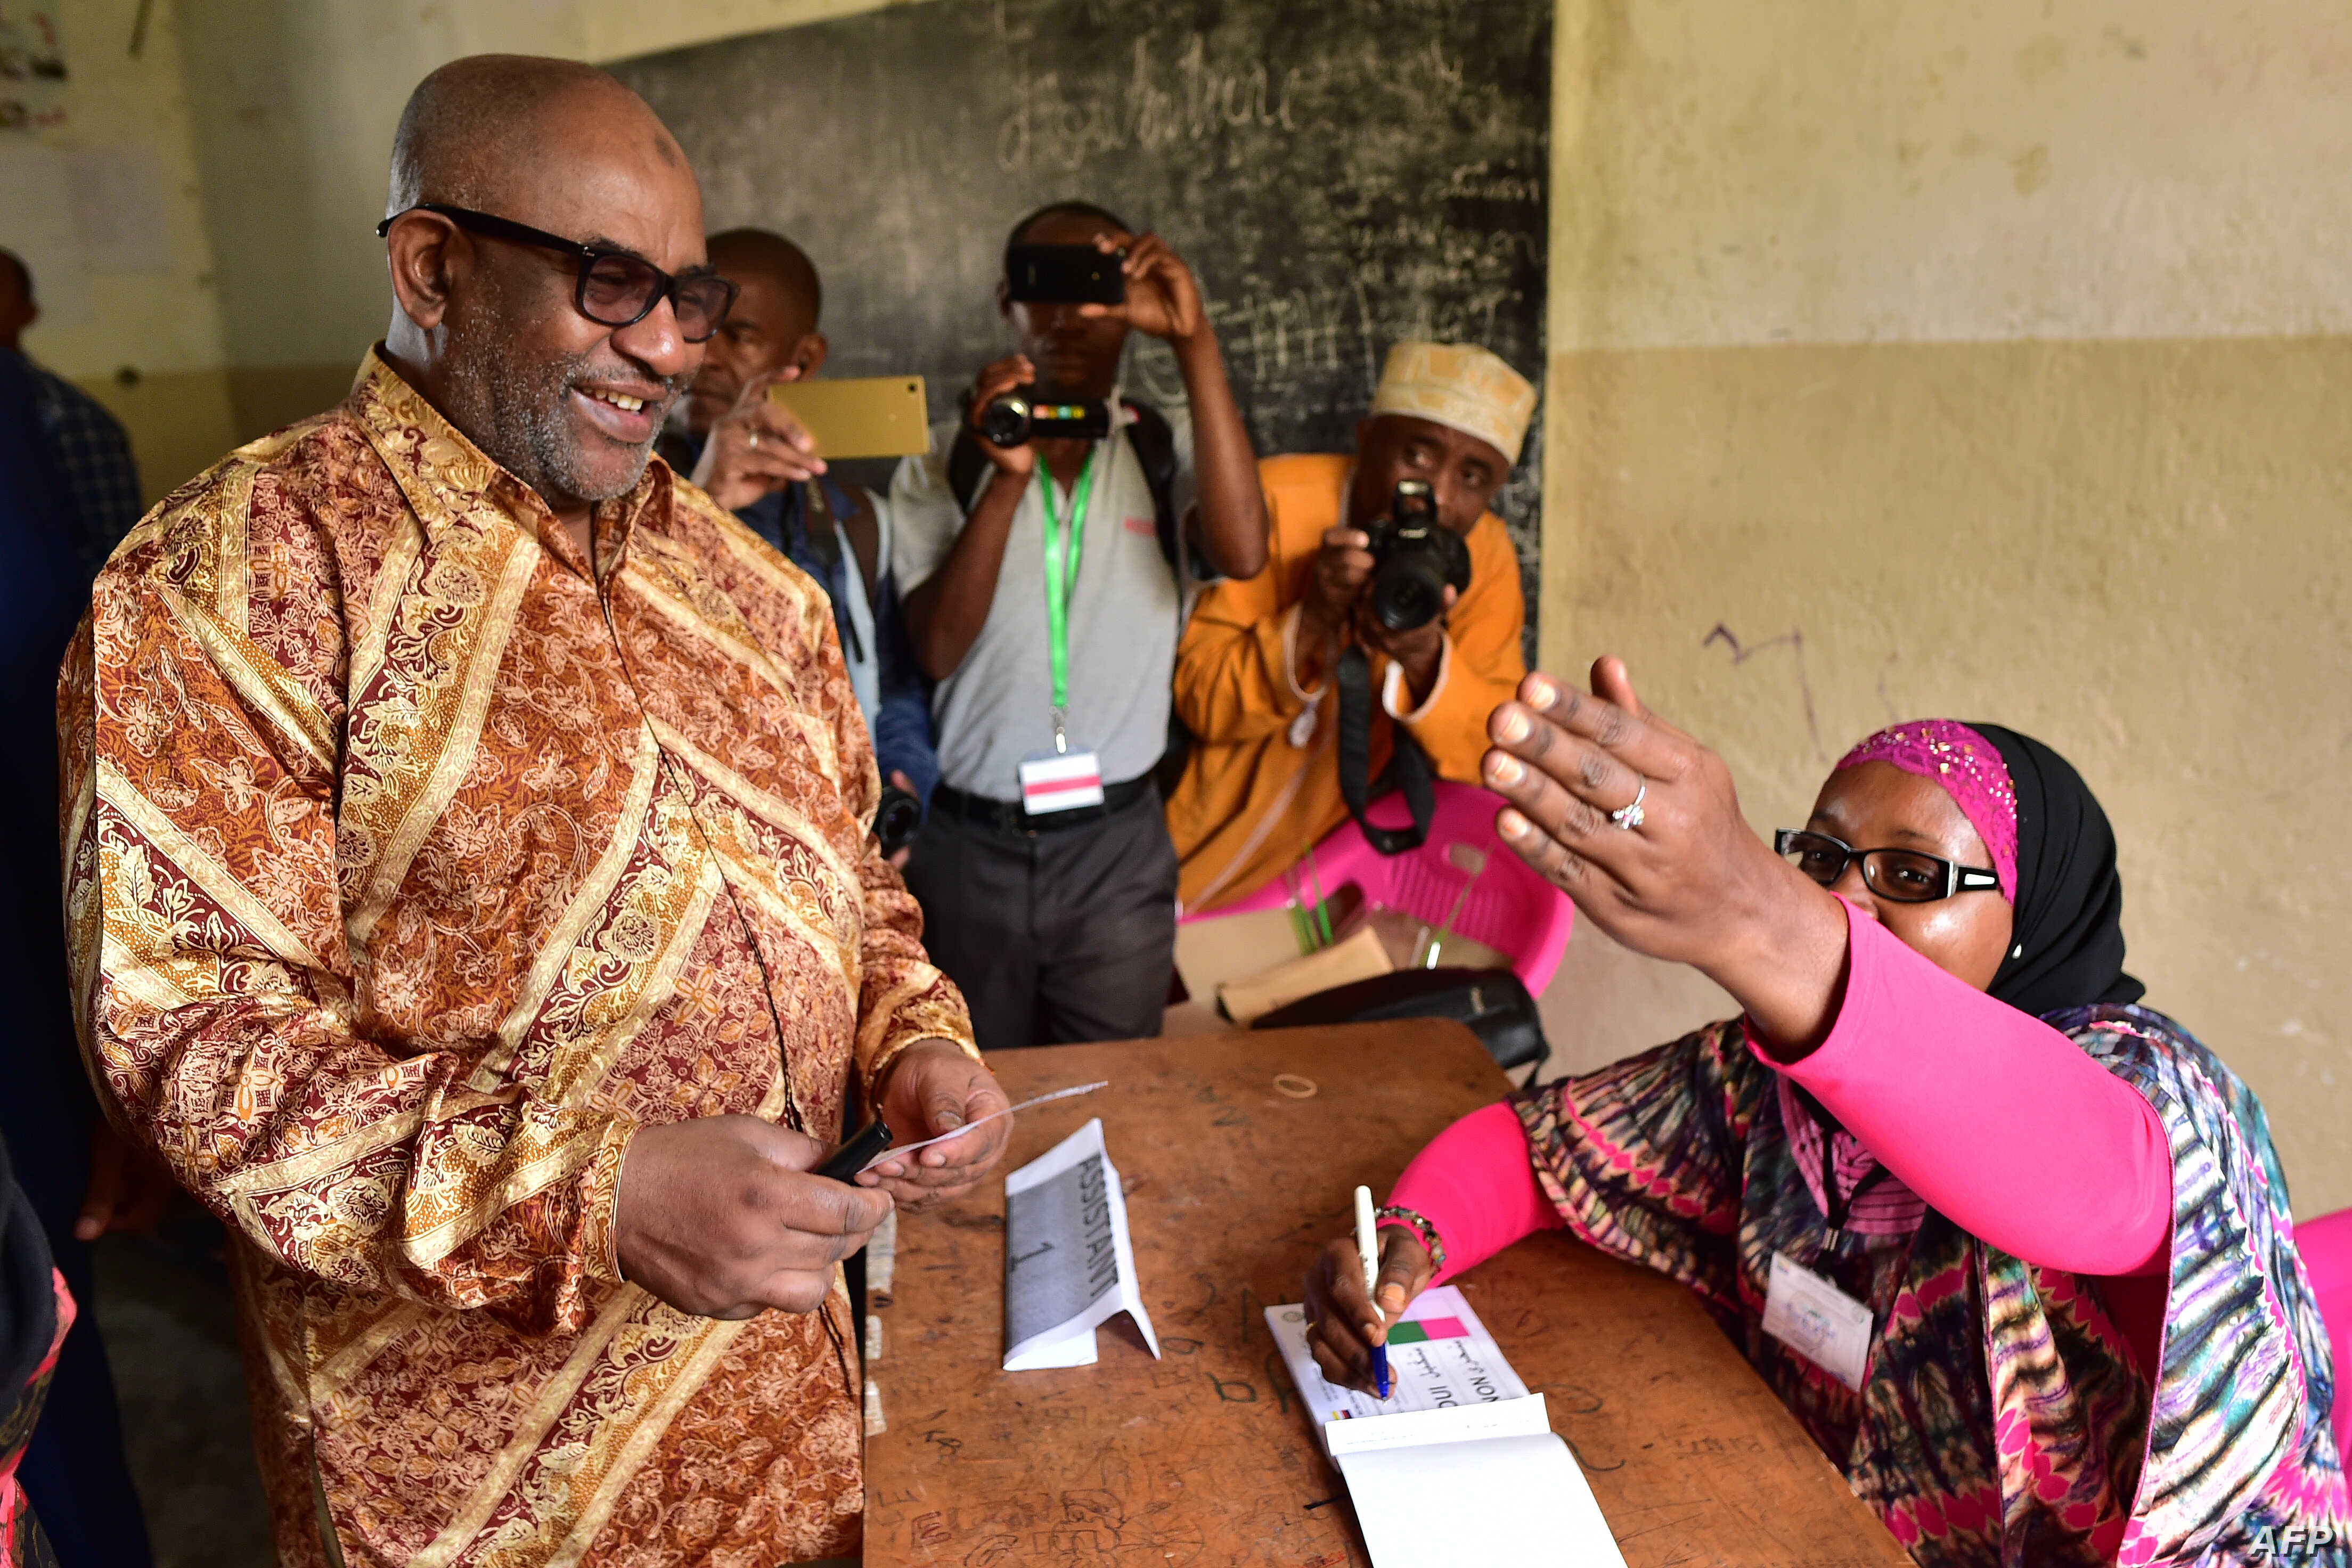 Comoros' President Azali Assoumani arrives at a polling station to cast his ballot during a constitutional referendum, July 30, 2018, outside Moroni capital of the Comoros archipelago off Africa's ea